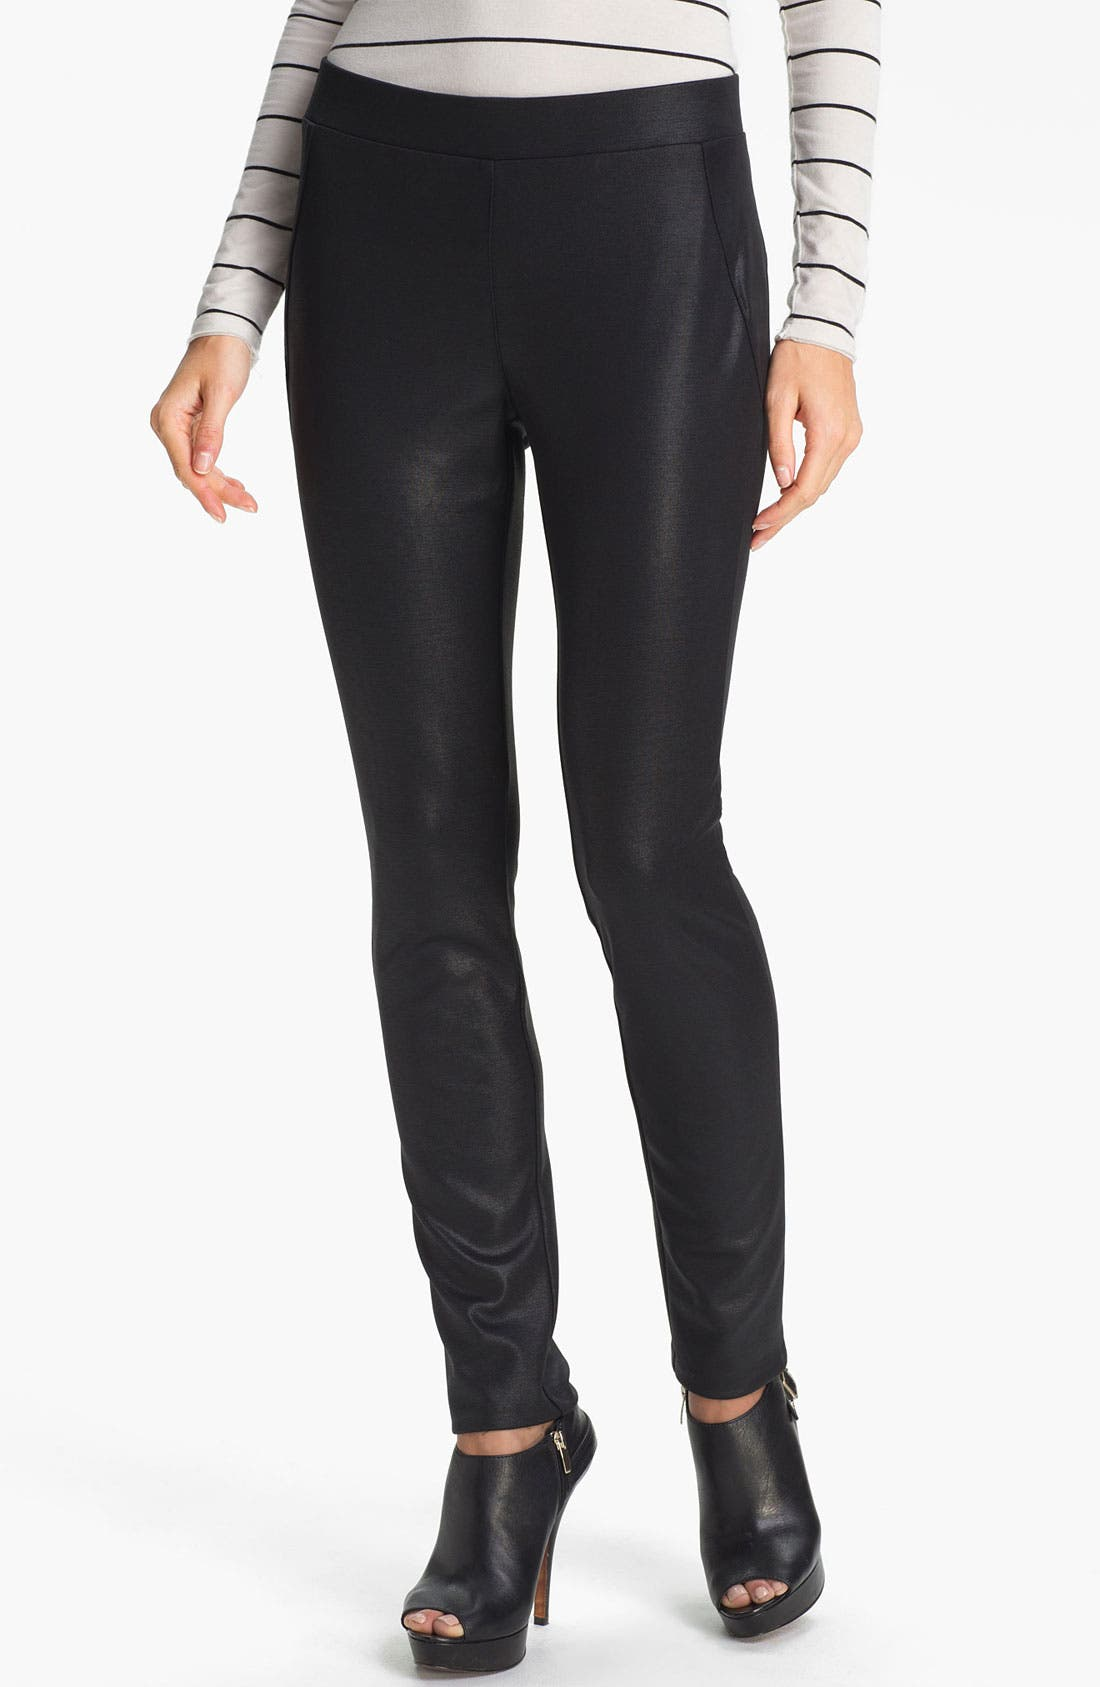 Main Image - Two by Vince Camuto Textured Leggings